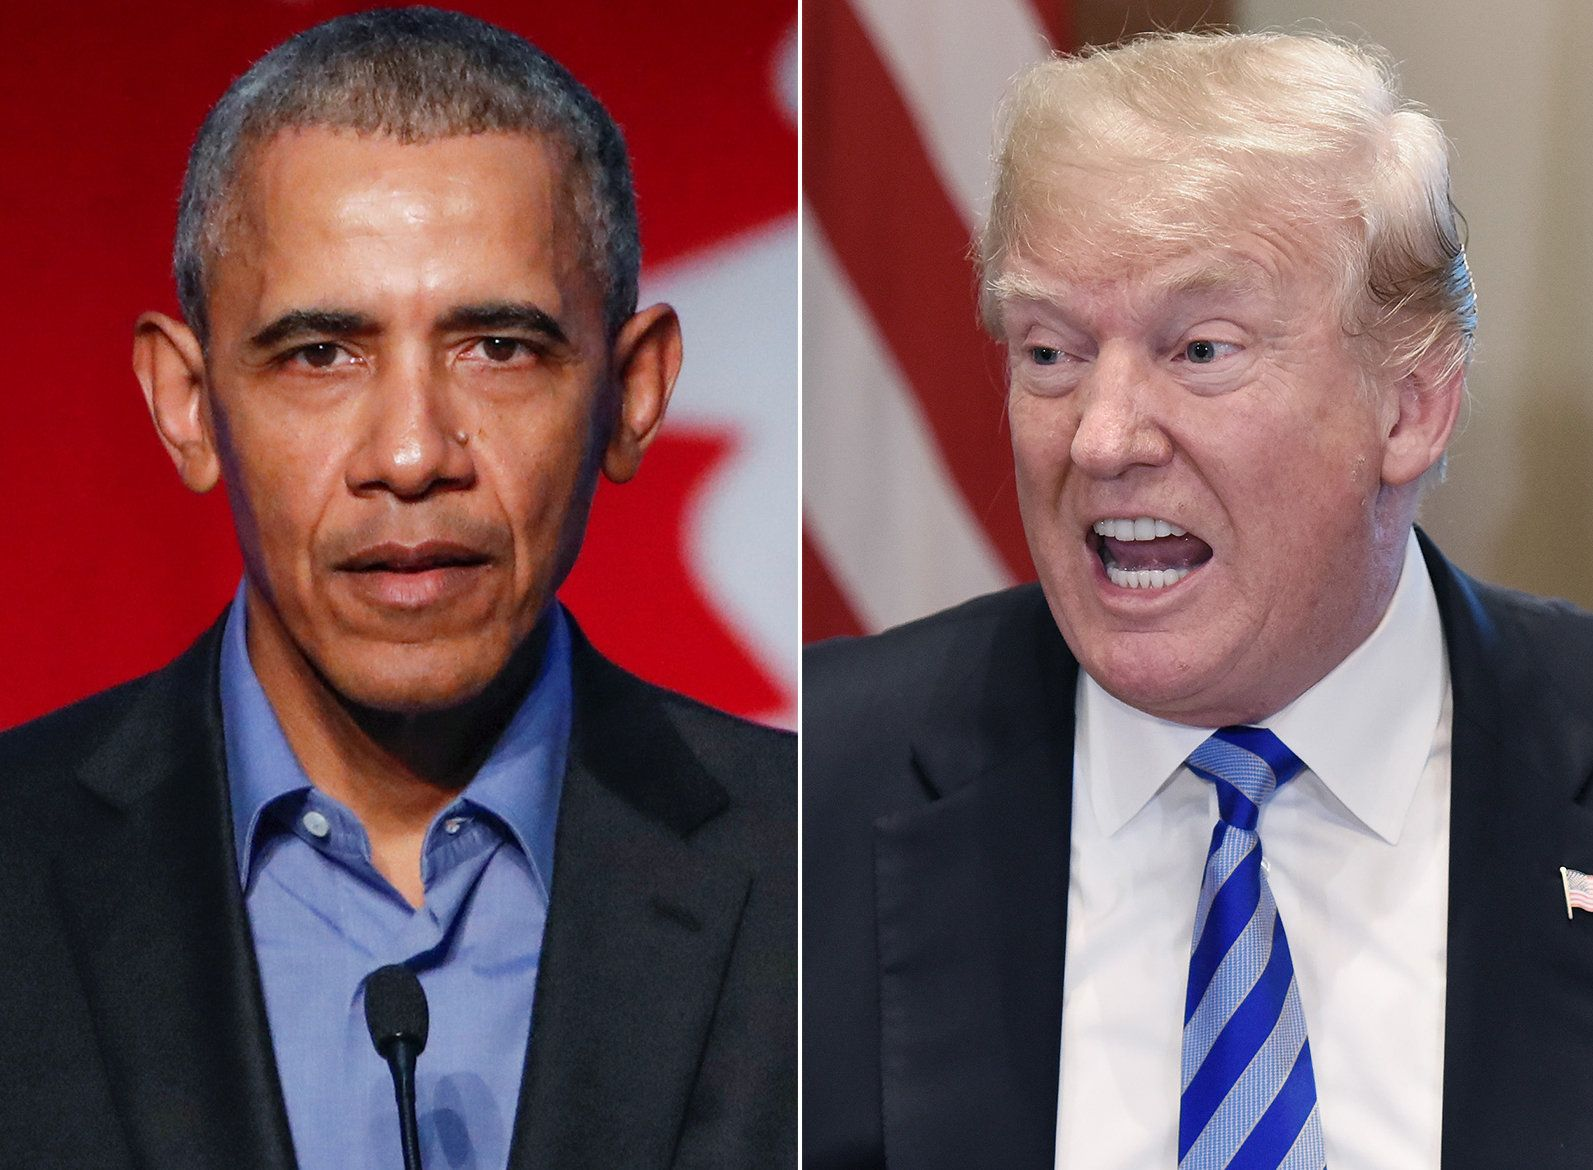 Obama Photographer Taunts Trump For Calling Immigrants 'Animals'